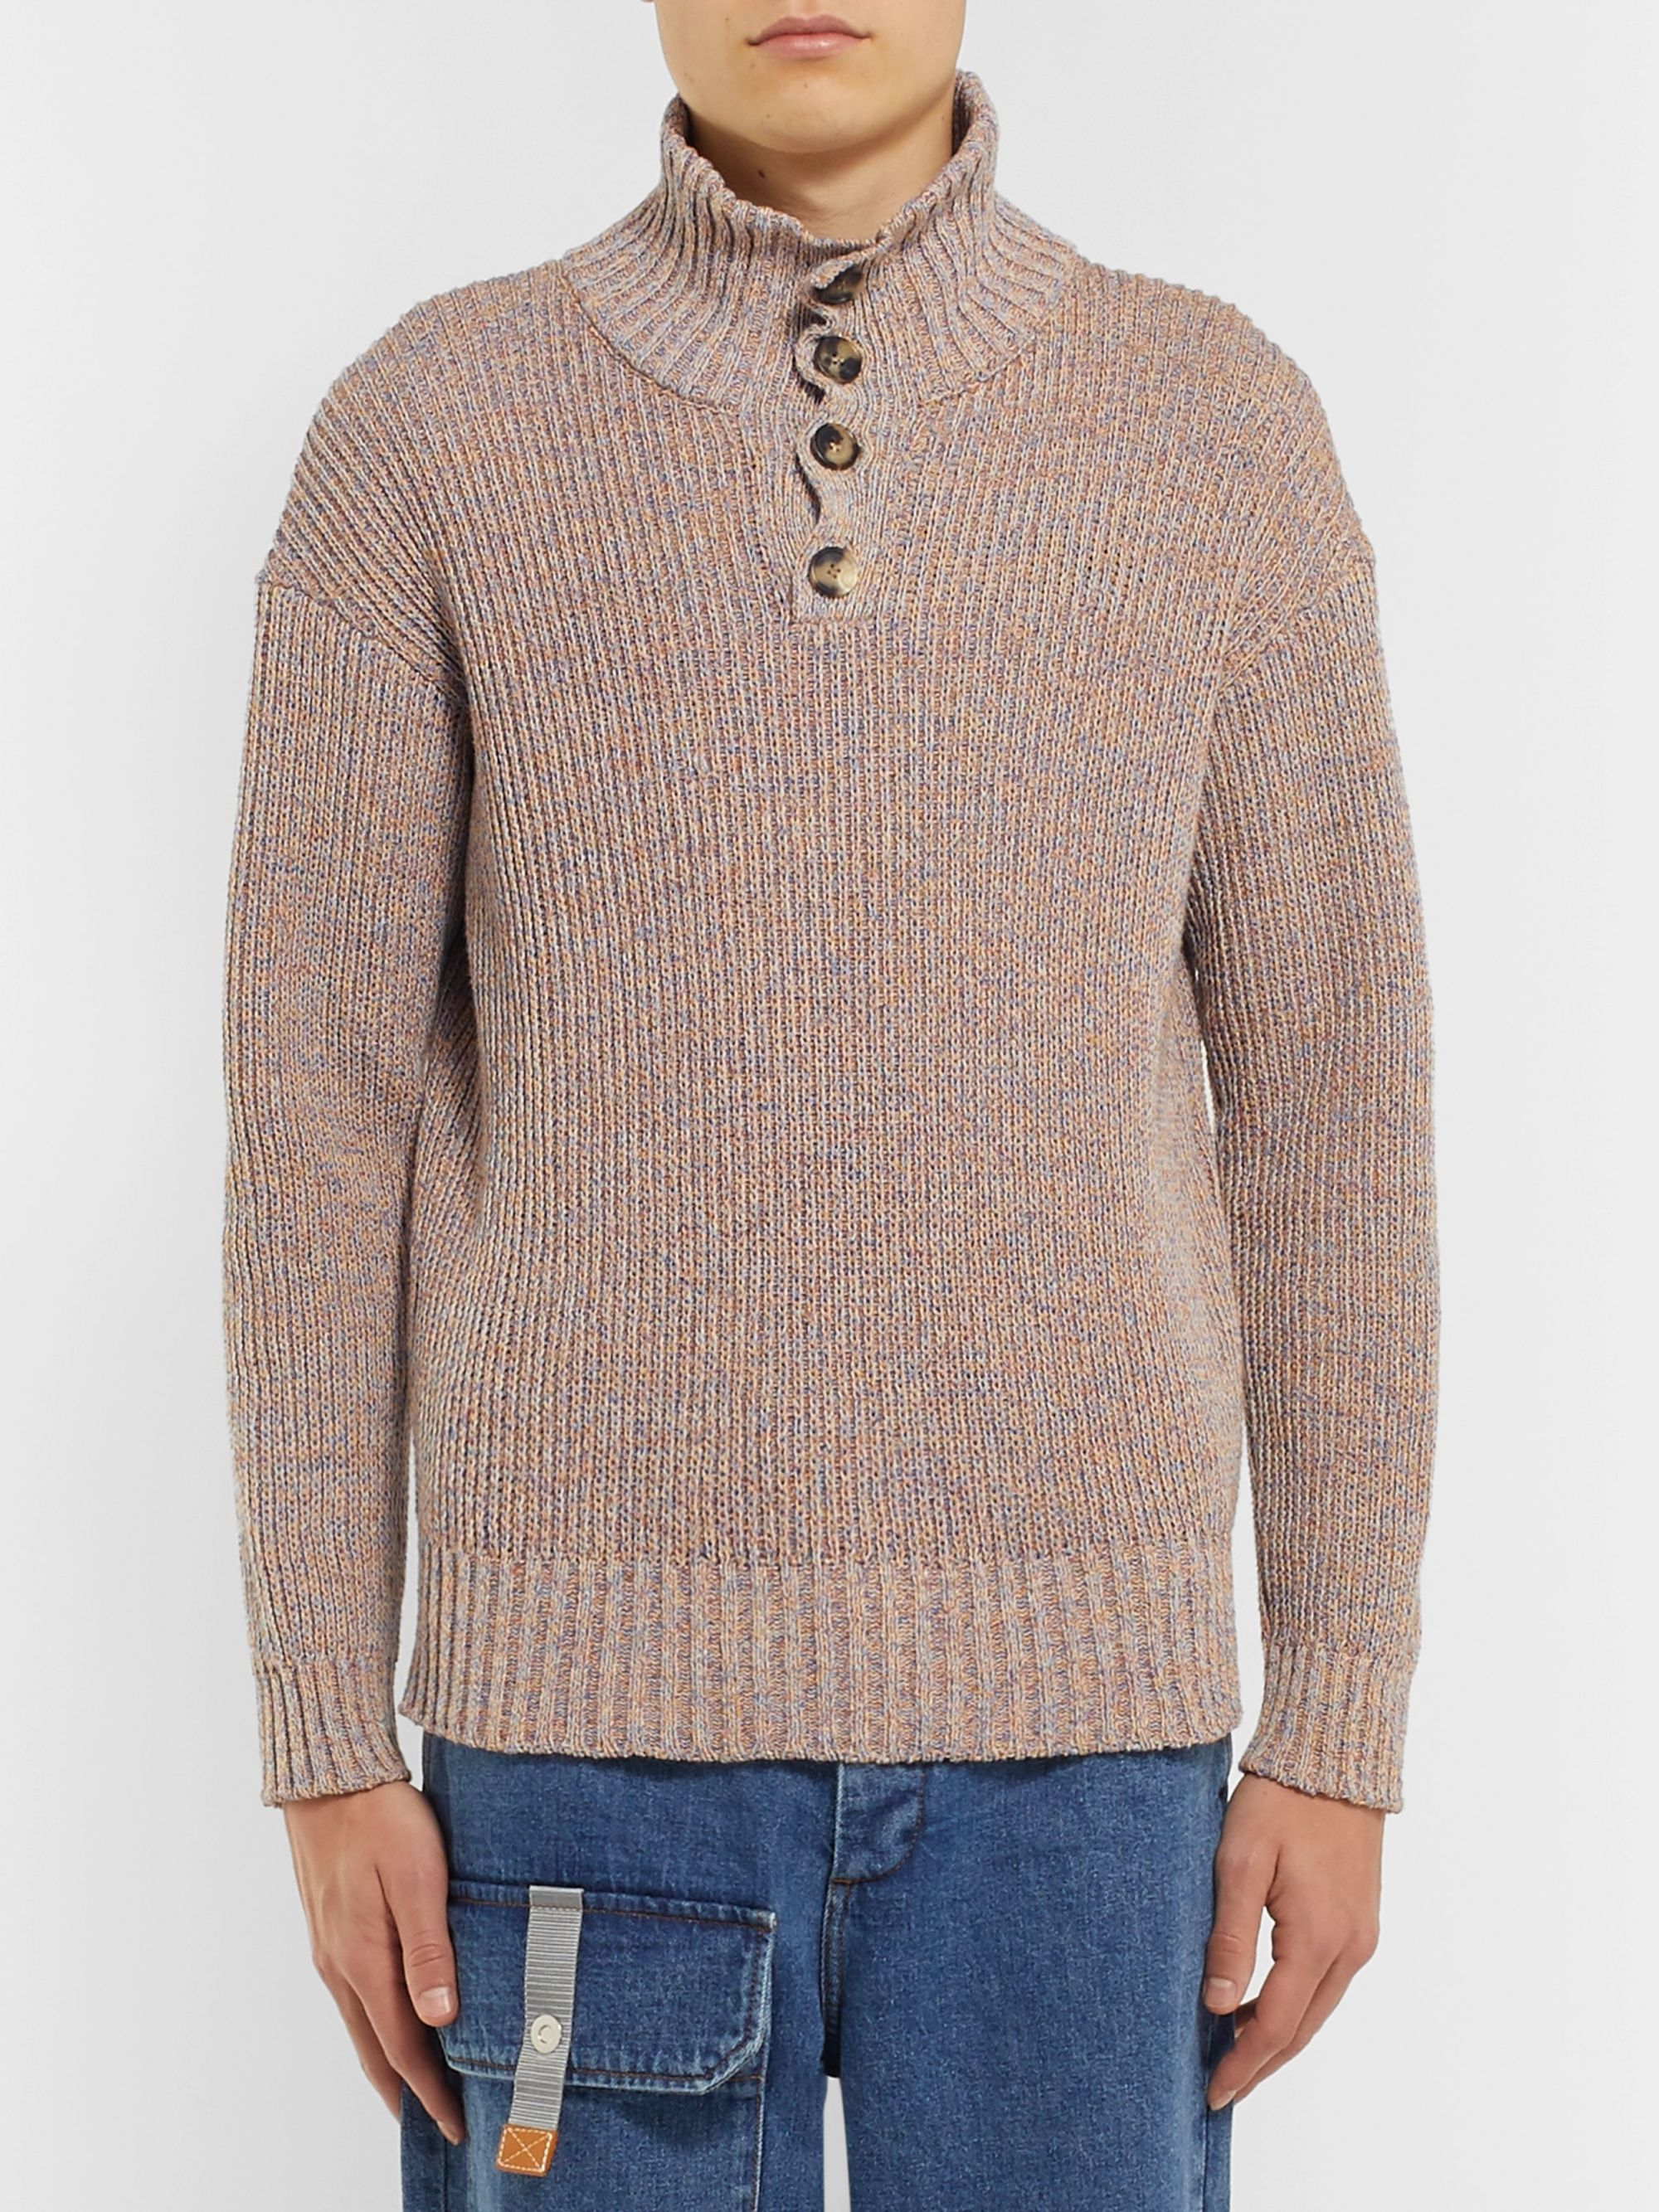 Loewe Ribbed Mélange Cotton-Blend Henley Sweater